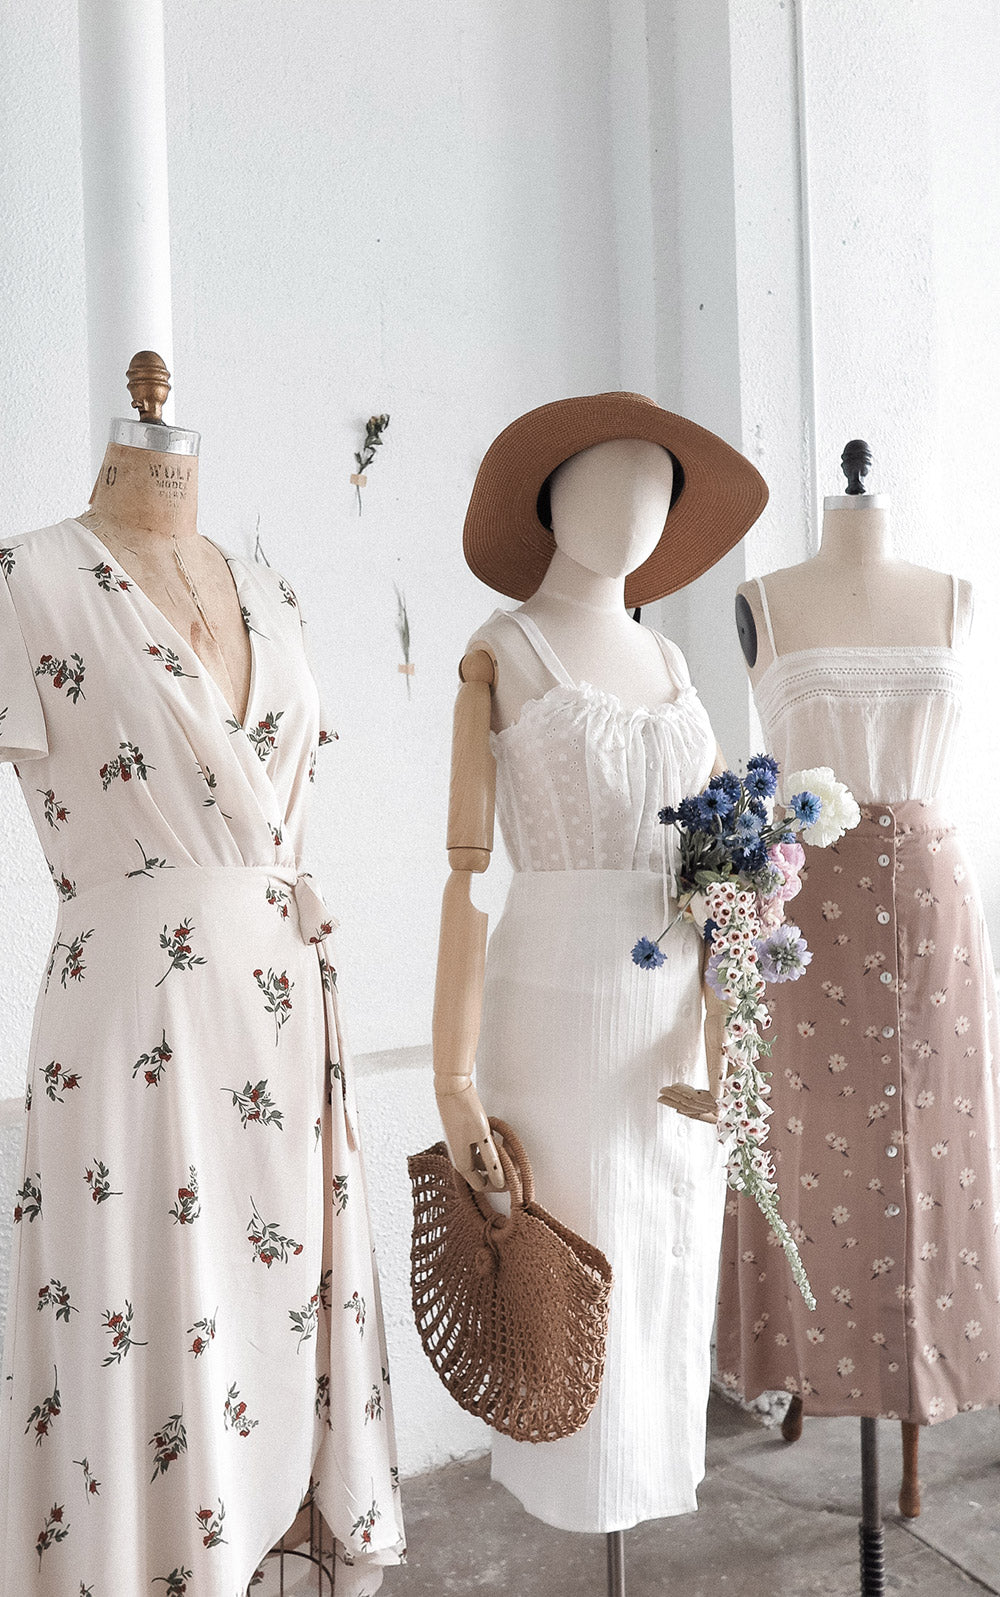 Adored Vintage / Feminine Romantic Vintage Inspired Clothing Shop